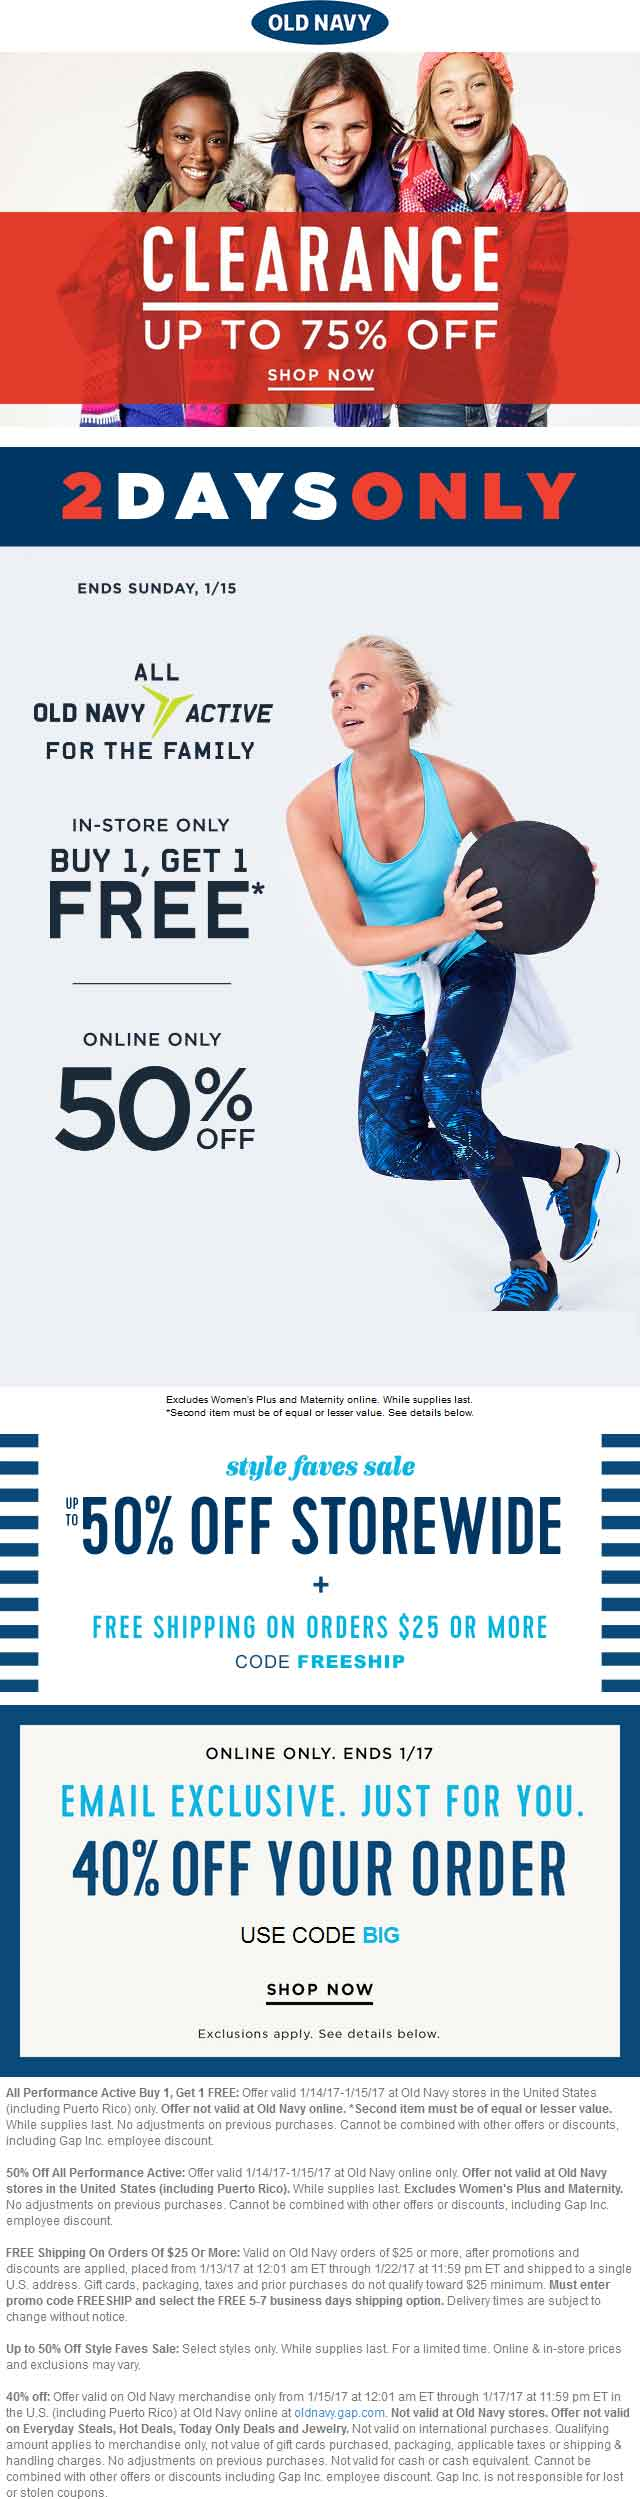 OldNavy.com Promo Coupon Second activewear item free at Old Navy, or 40% off everything online via promo code BIG